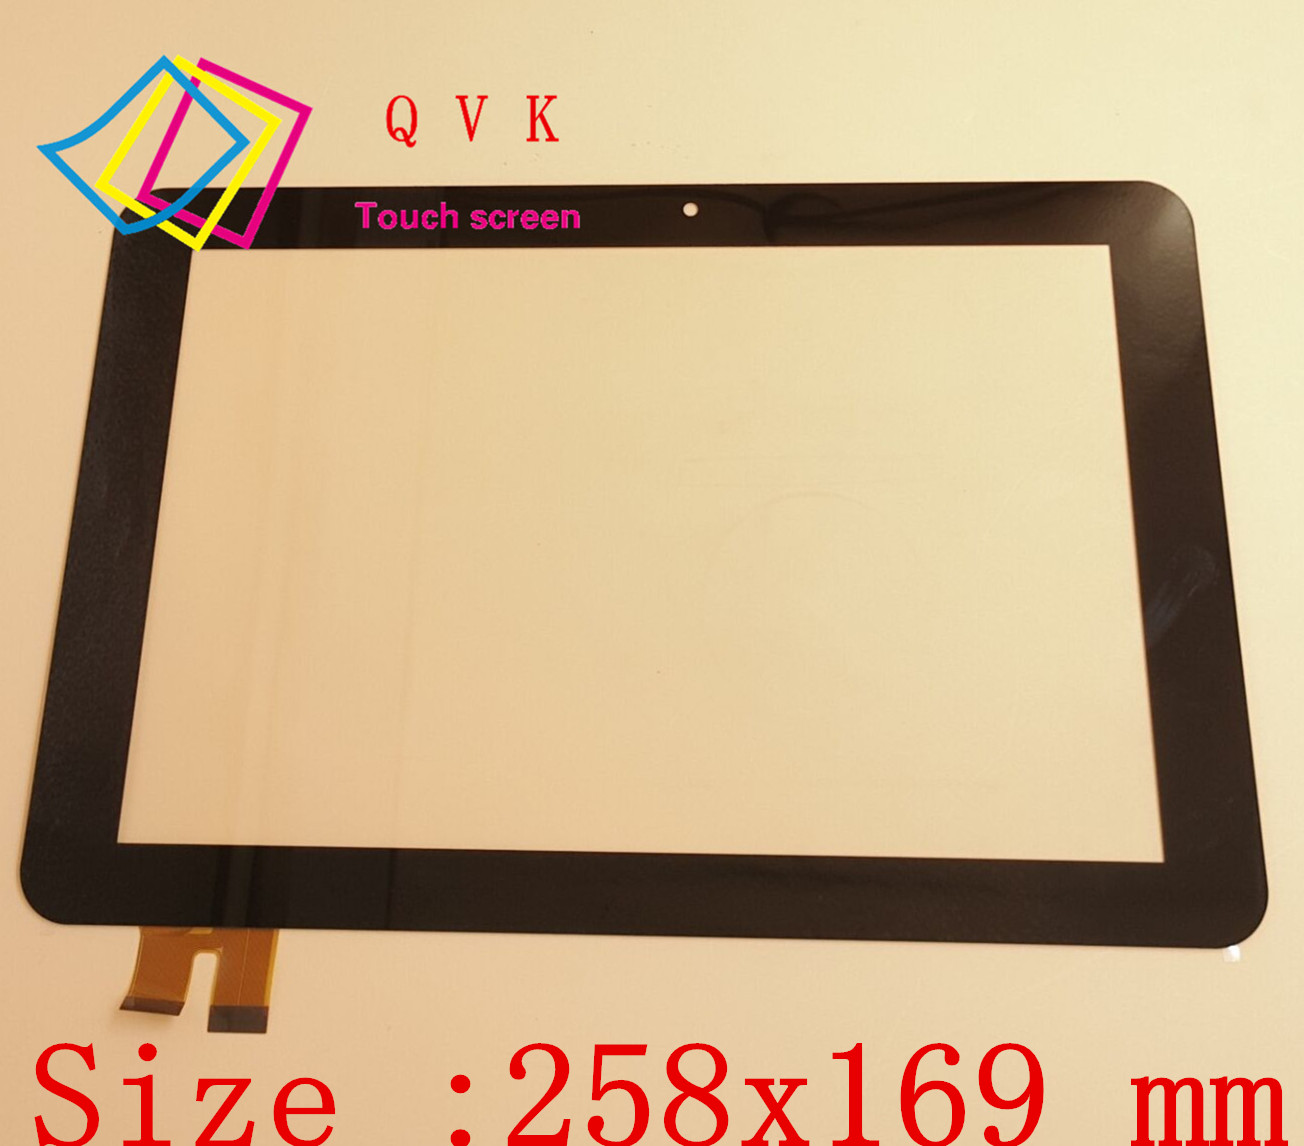 New 10.1 inch For GOCLEVER TAB R105BK Tablet Touch Screen Tablet Glass Tablet Glass Sensor P/N MT10104-V2D brand new p n e738048 touch screen glass well tested working three months warranty